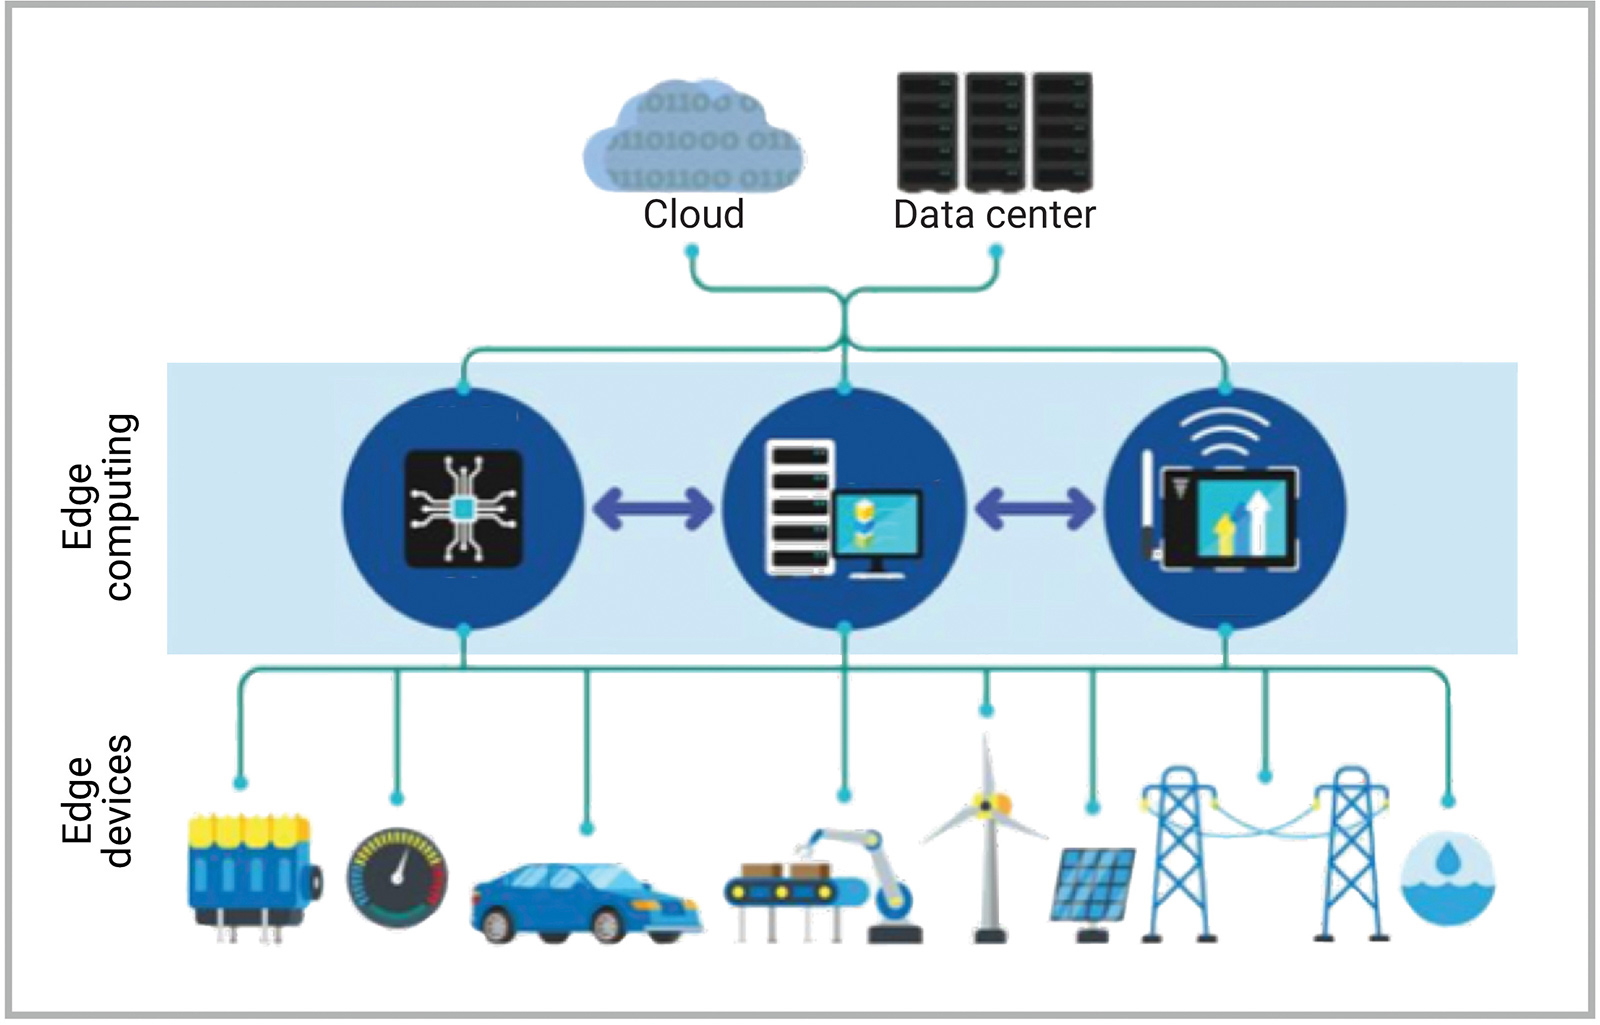 Figure 1: Edge computing moves cloud processes closer to end devices by using micro data centers to analyze and process data. (Synopsys)